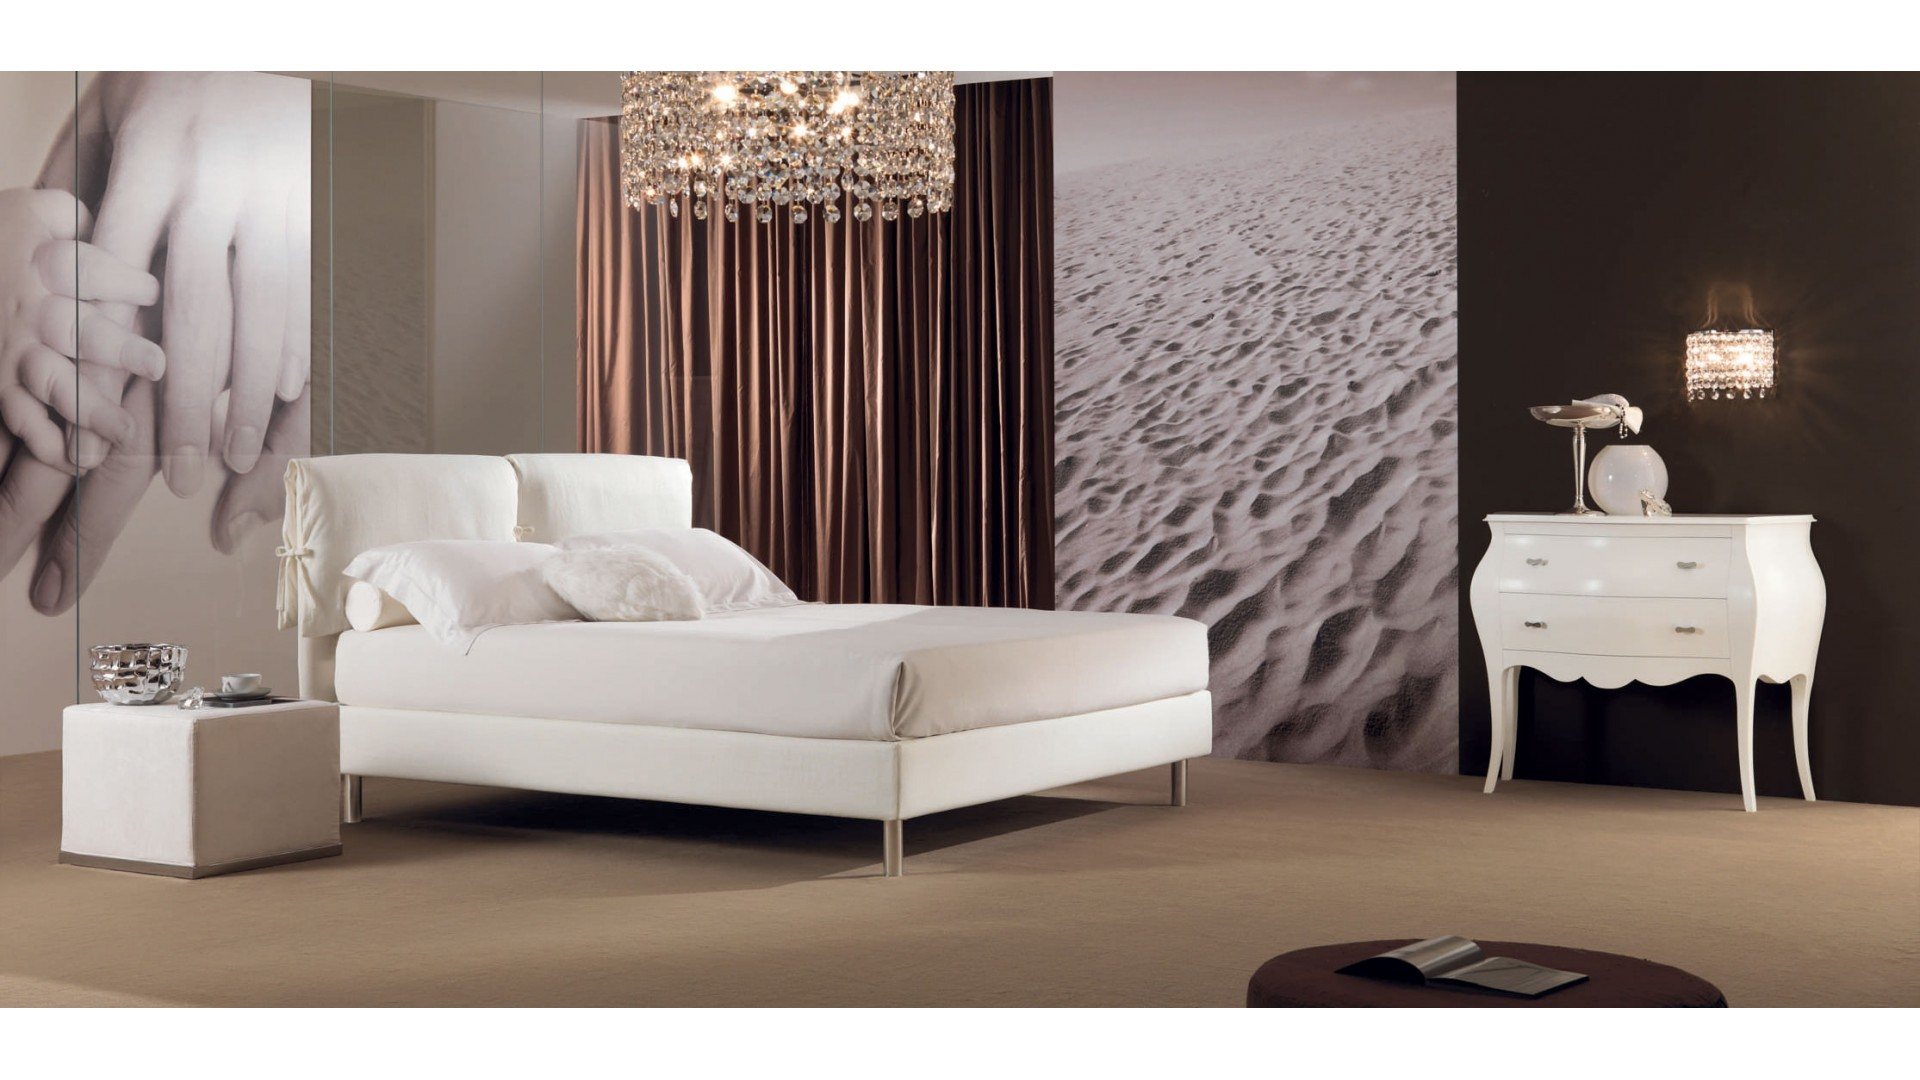 Lit double chambre adulte PERSONNALISABLE Ariana - PIERMARIA